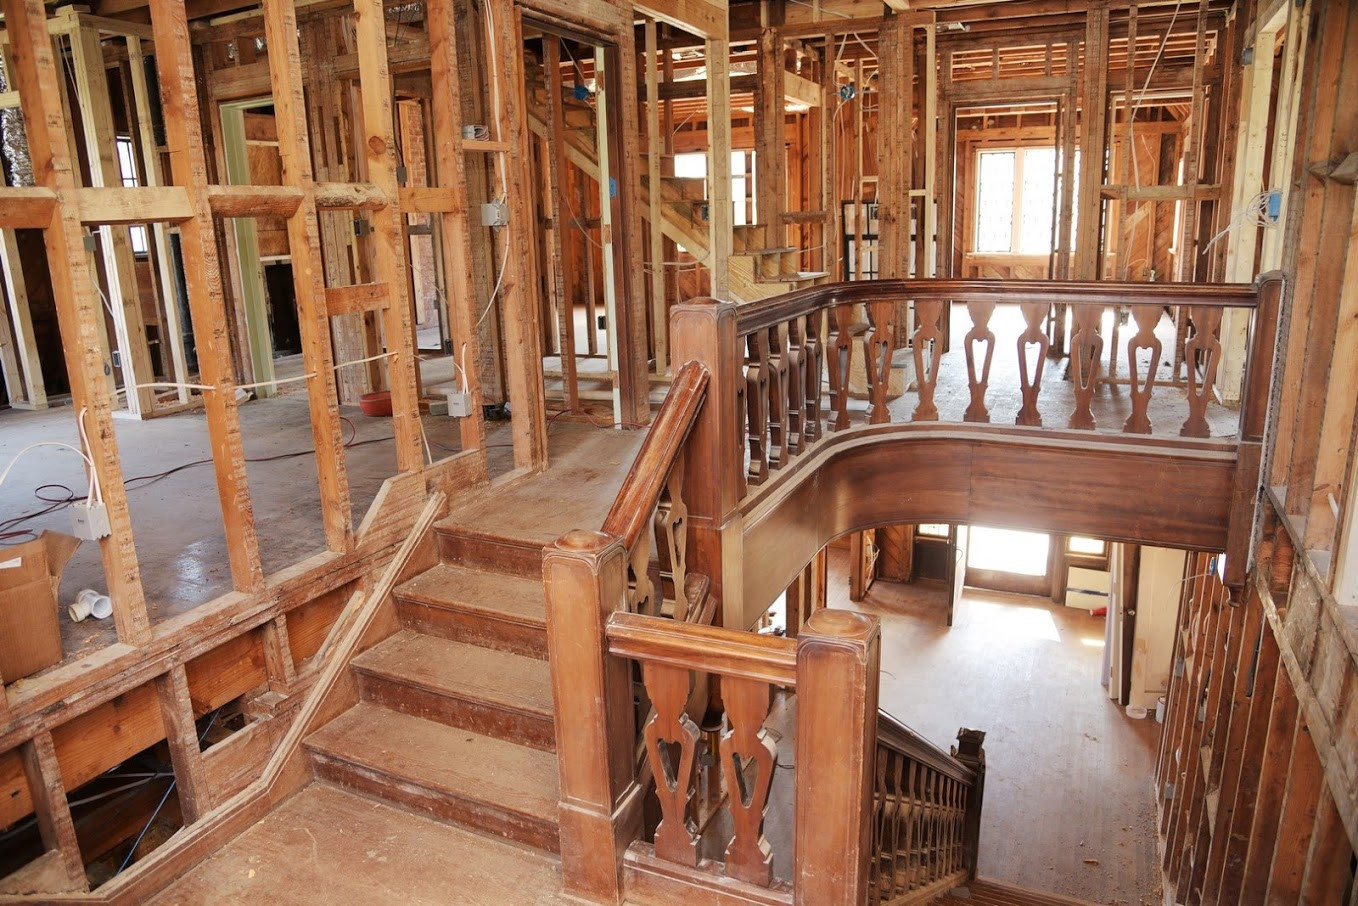 kw hardwood floors charlotte nc of cote de texas the aidan gray agwithanedge winners in before randal took the house down to the studs it was this beautiful iconic banister that sold randal on the house after the wood floors